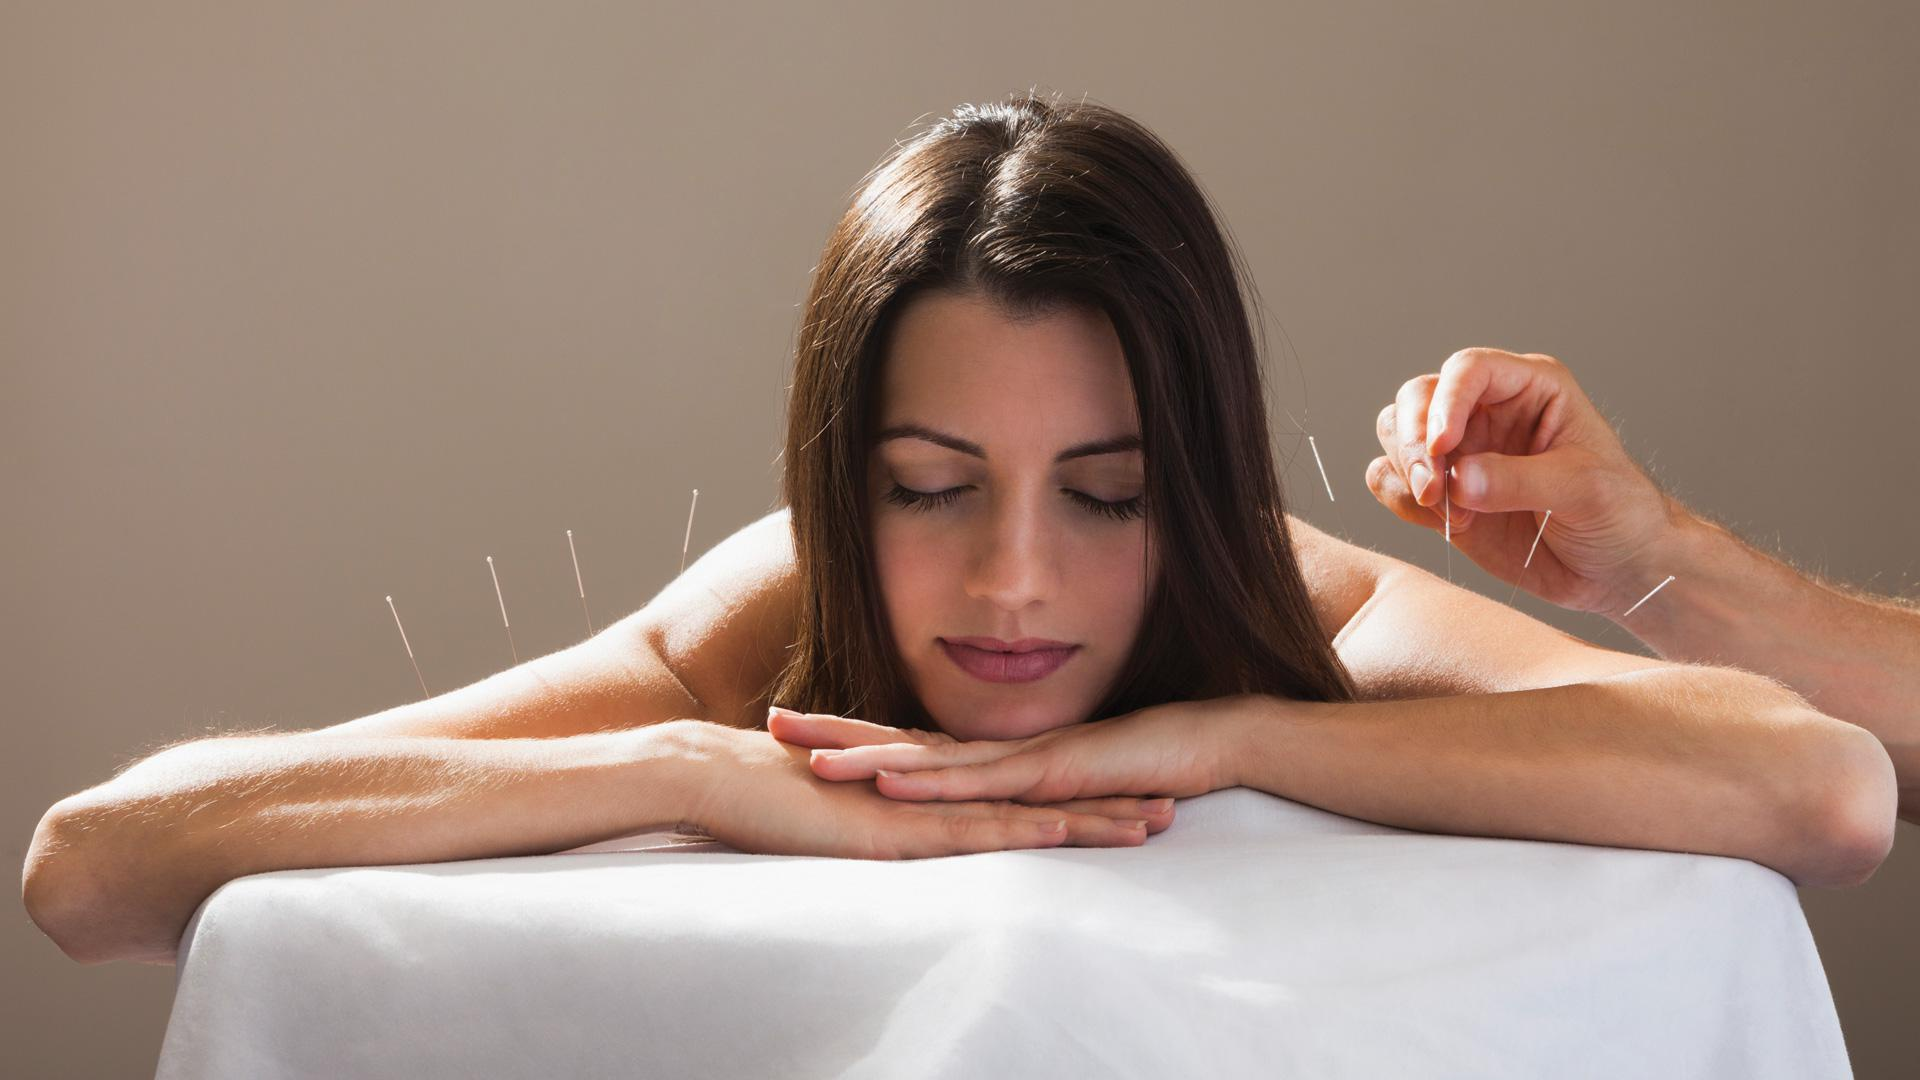 An acupuncture cynic tries it for the first time